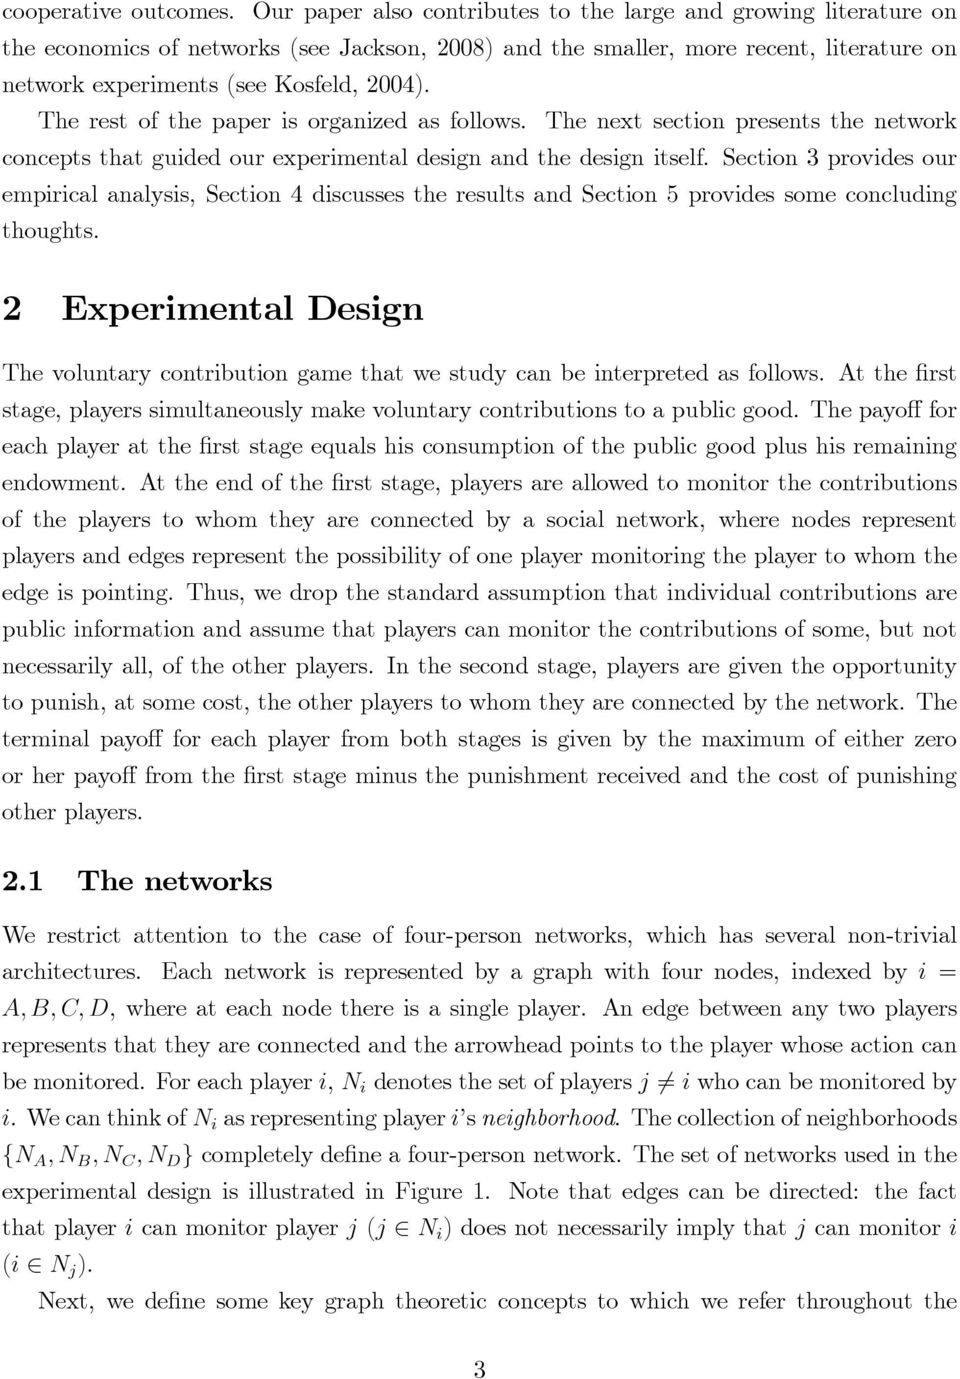 The rest of the paper is organized as follows. The next section presents the network concepts that guided our experimental design and the design itself.